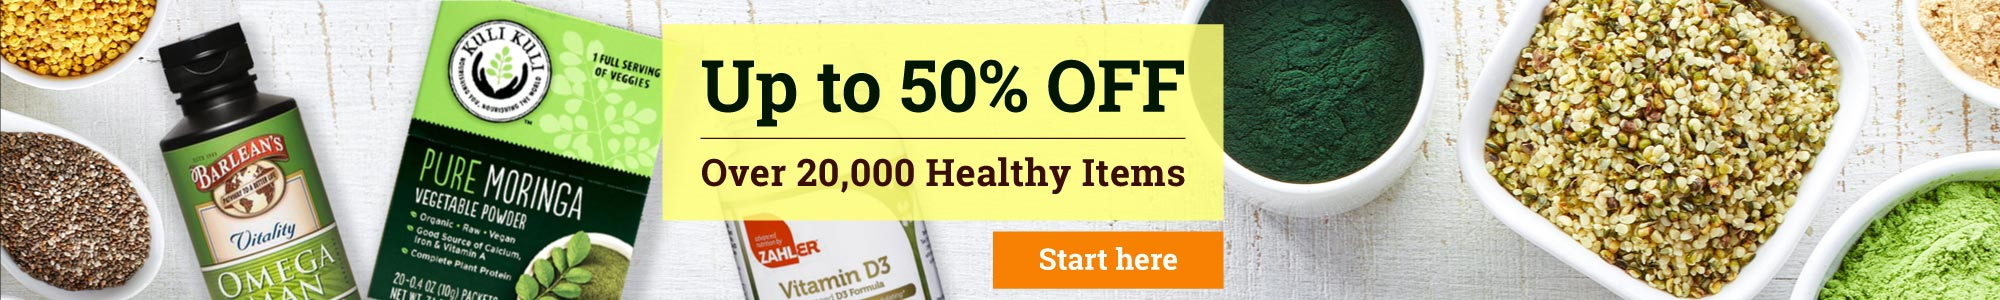 eVitamins Coupon